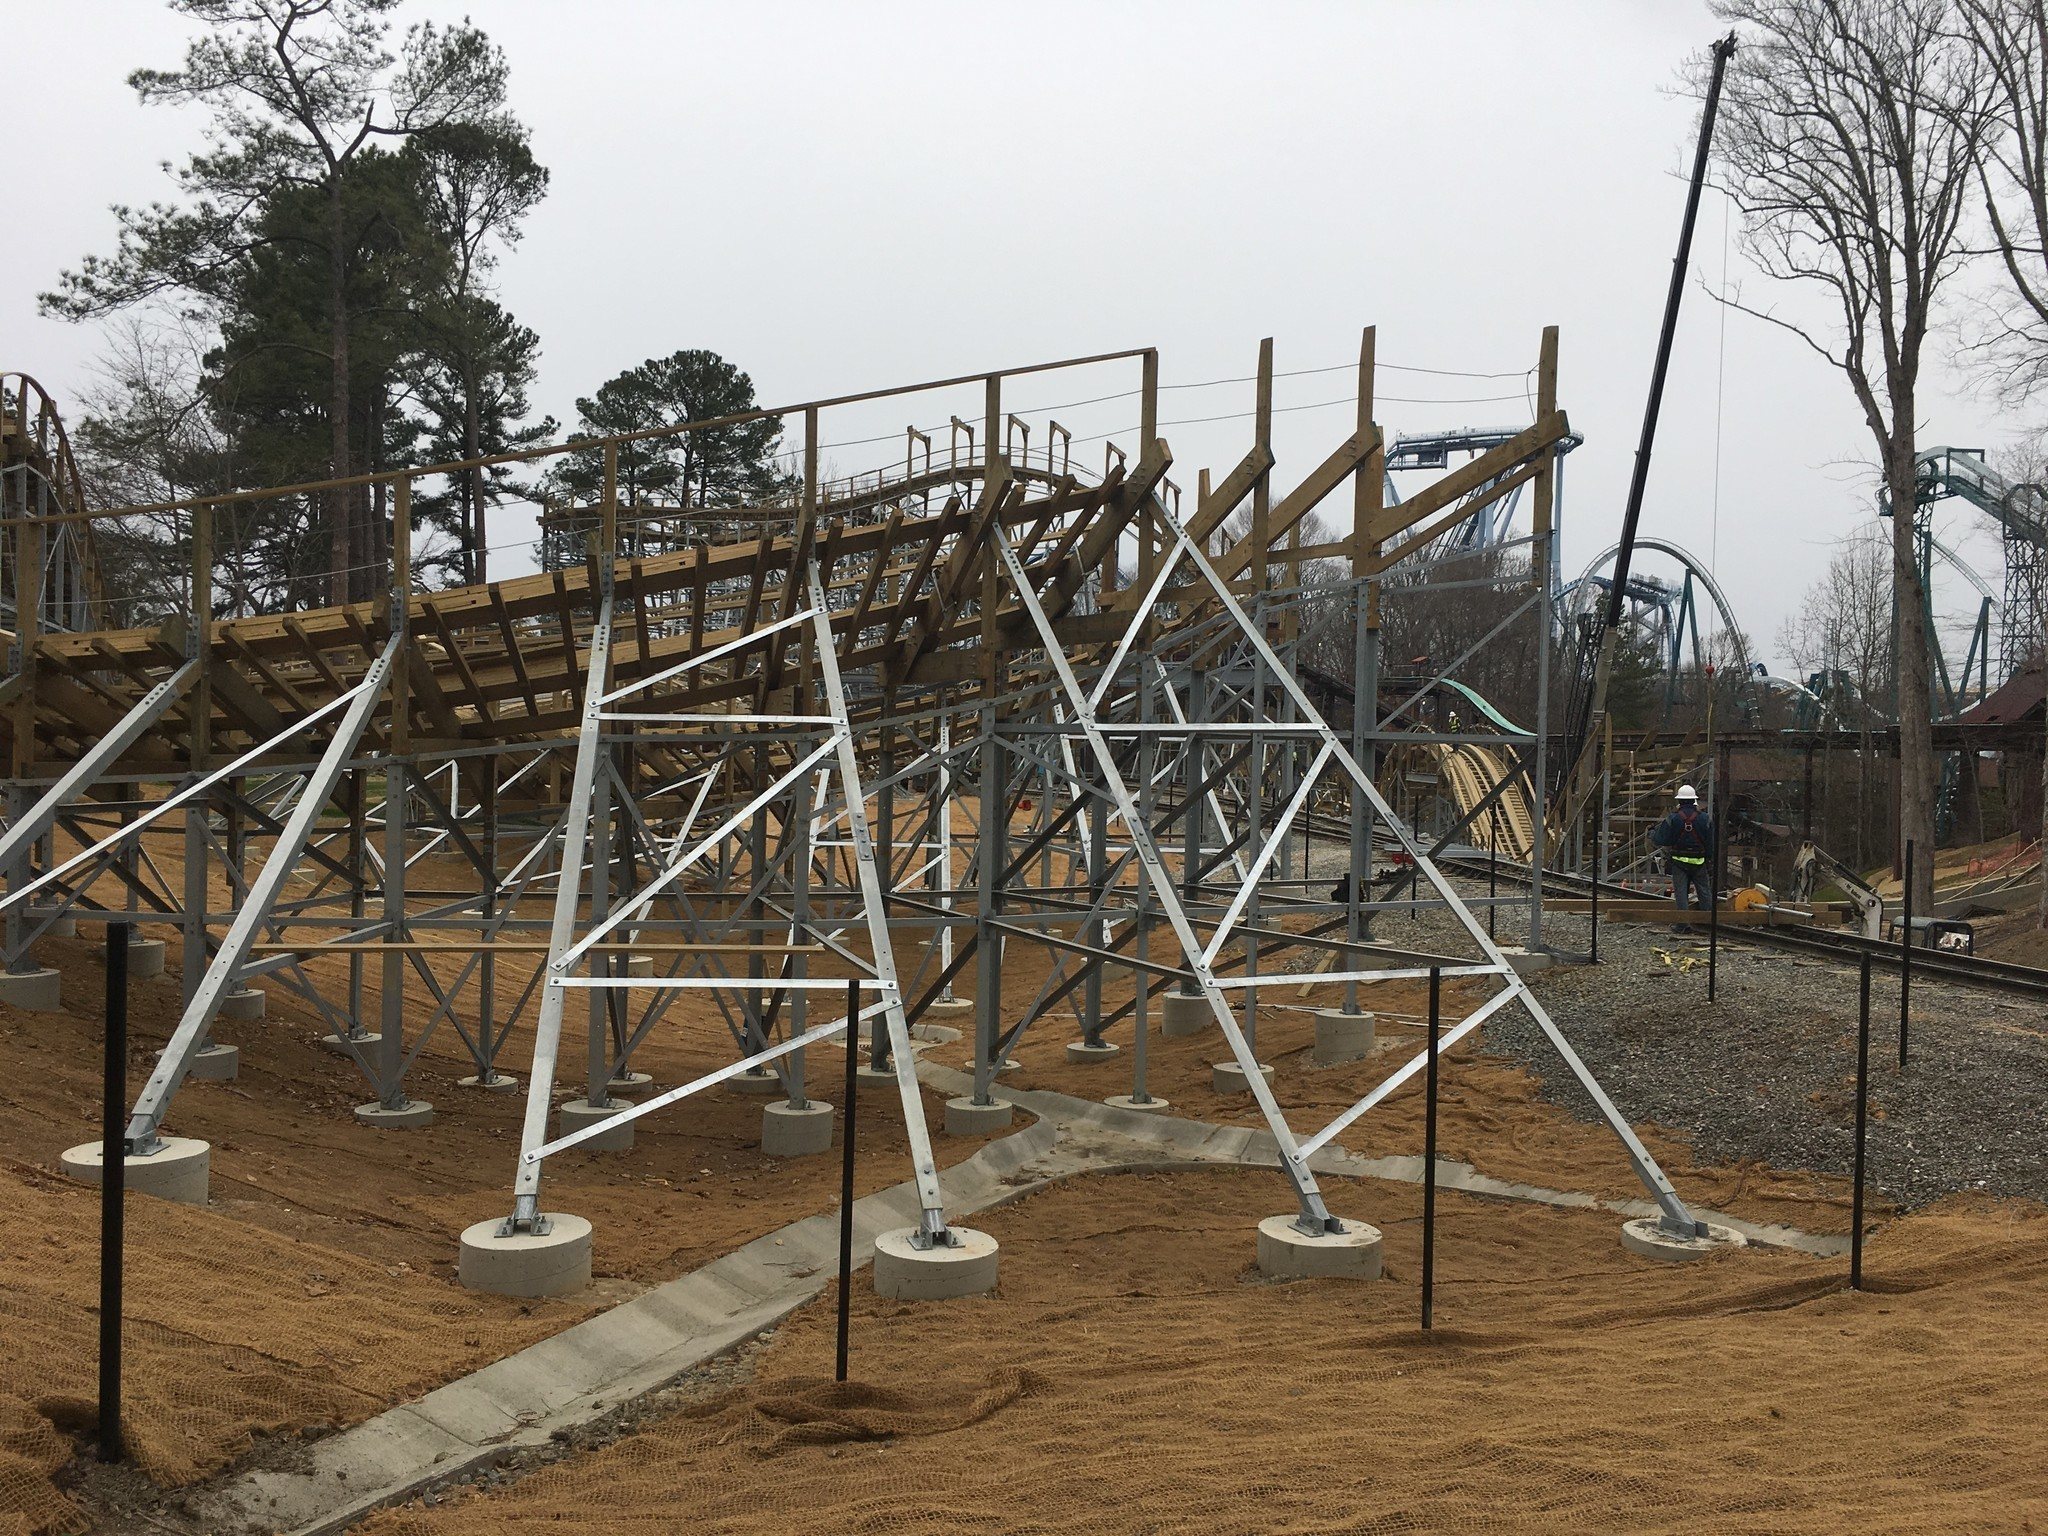 Busch Gardens shows off new wooden roller coaster - The Virginia Gazette